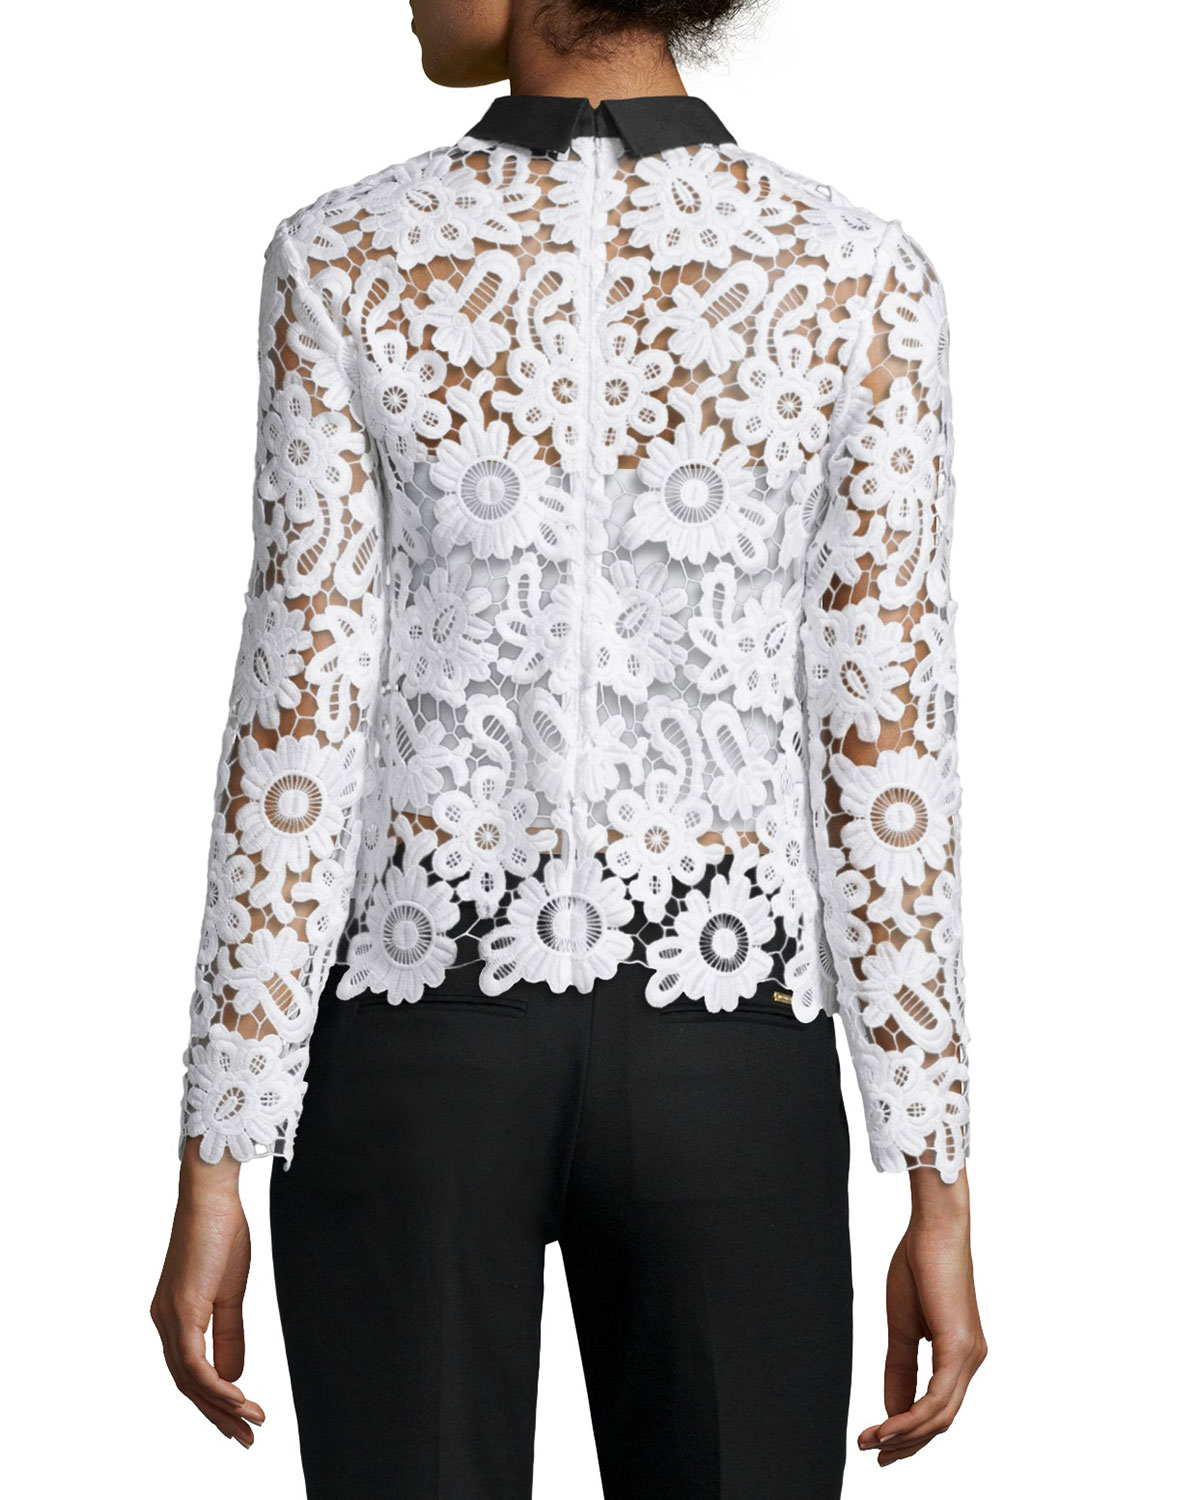 Self Portrait Long Sleeve Collared Lace Top In Black Lyst